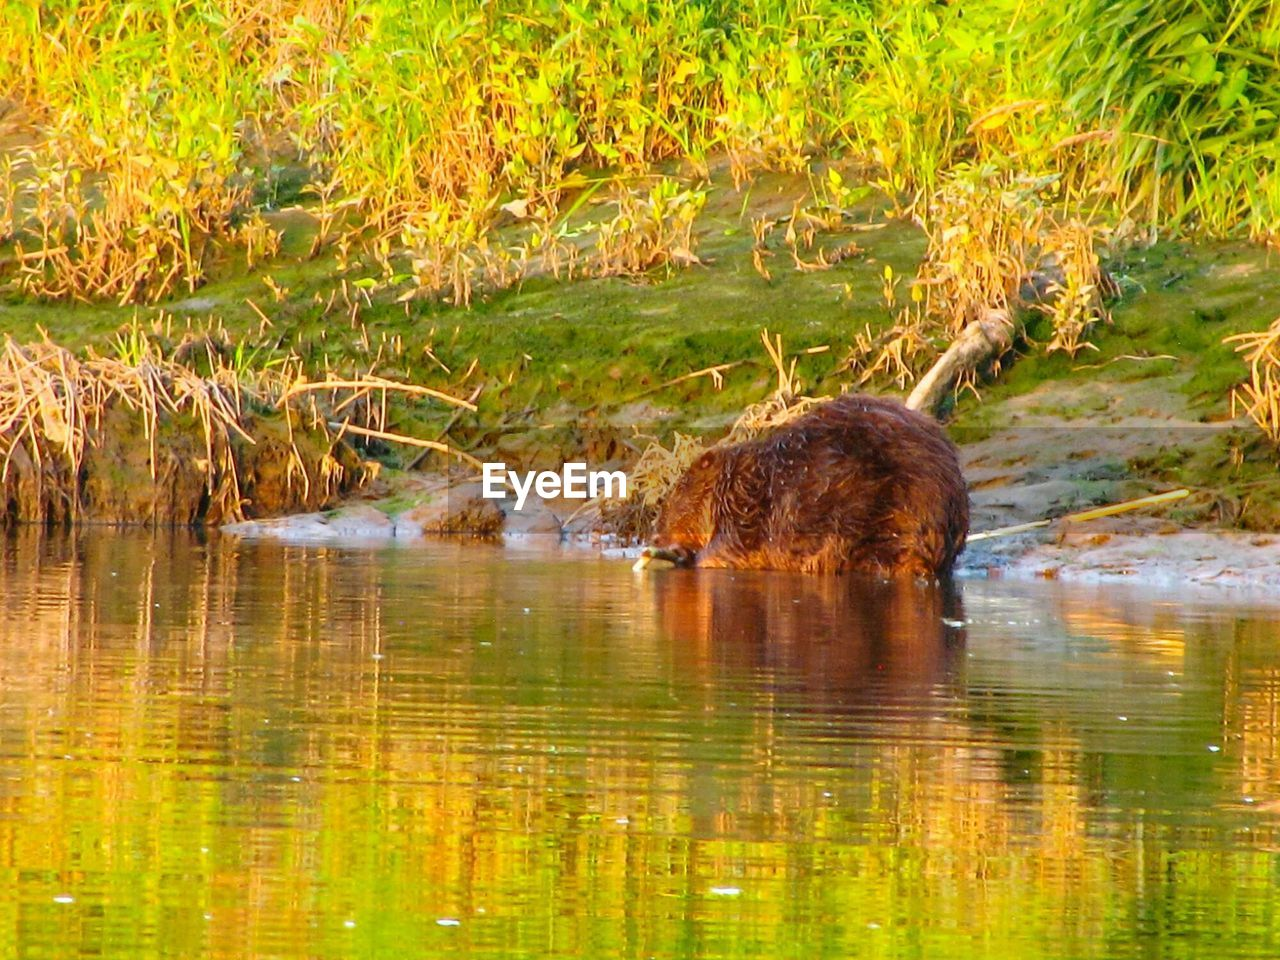 animal themes, animal, animal wildlife, water, animals in the wild, lake, one animal, mammal, reflection, plant, nature, no people, waterfront, vertebrate, day, green color, grass, outdoors